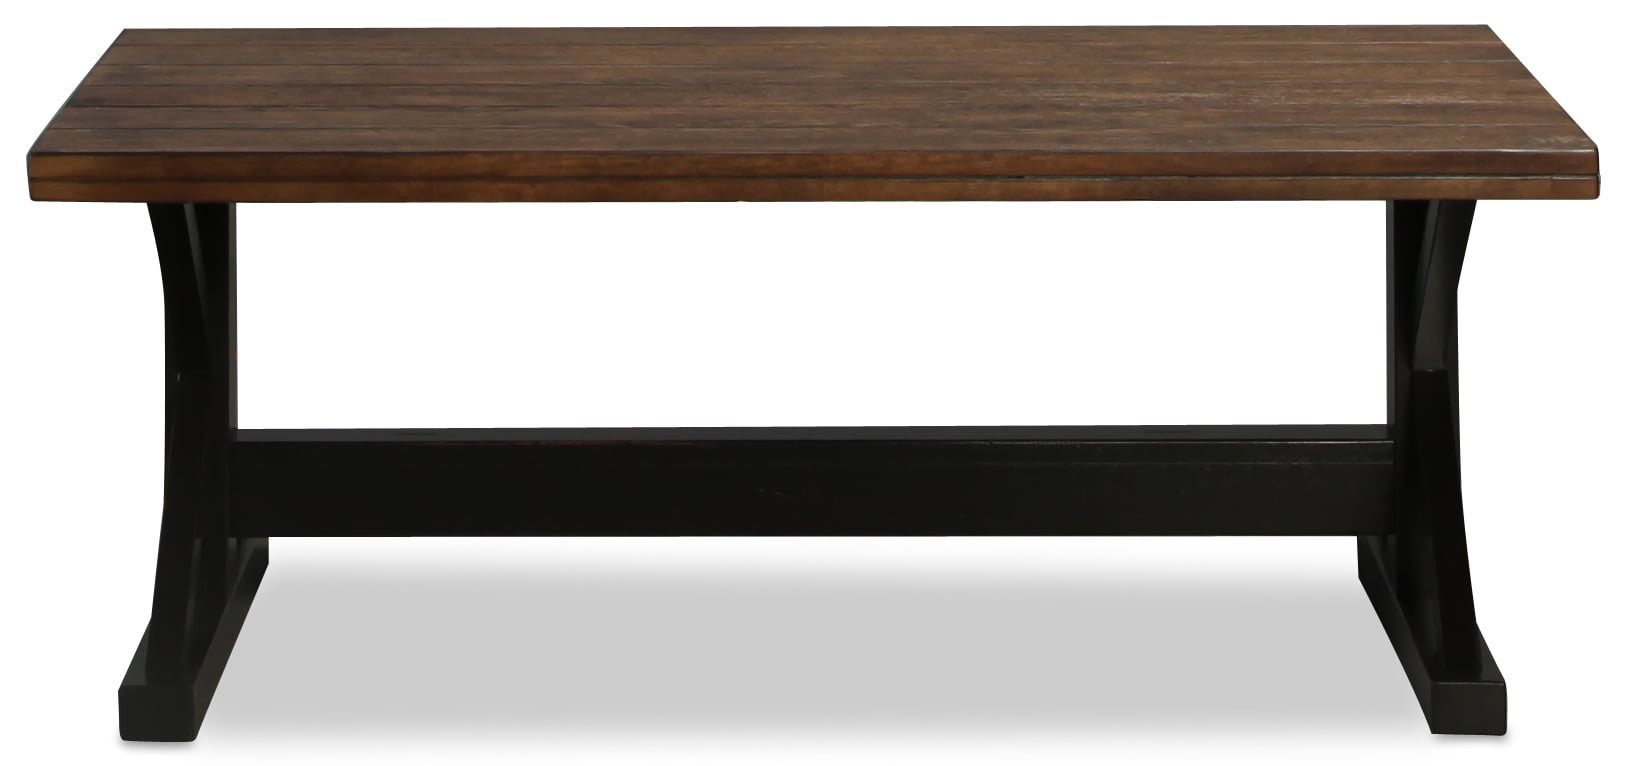 Guthrie Coffee Table